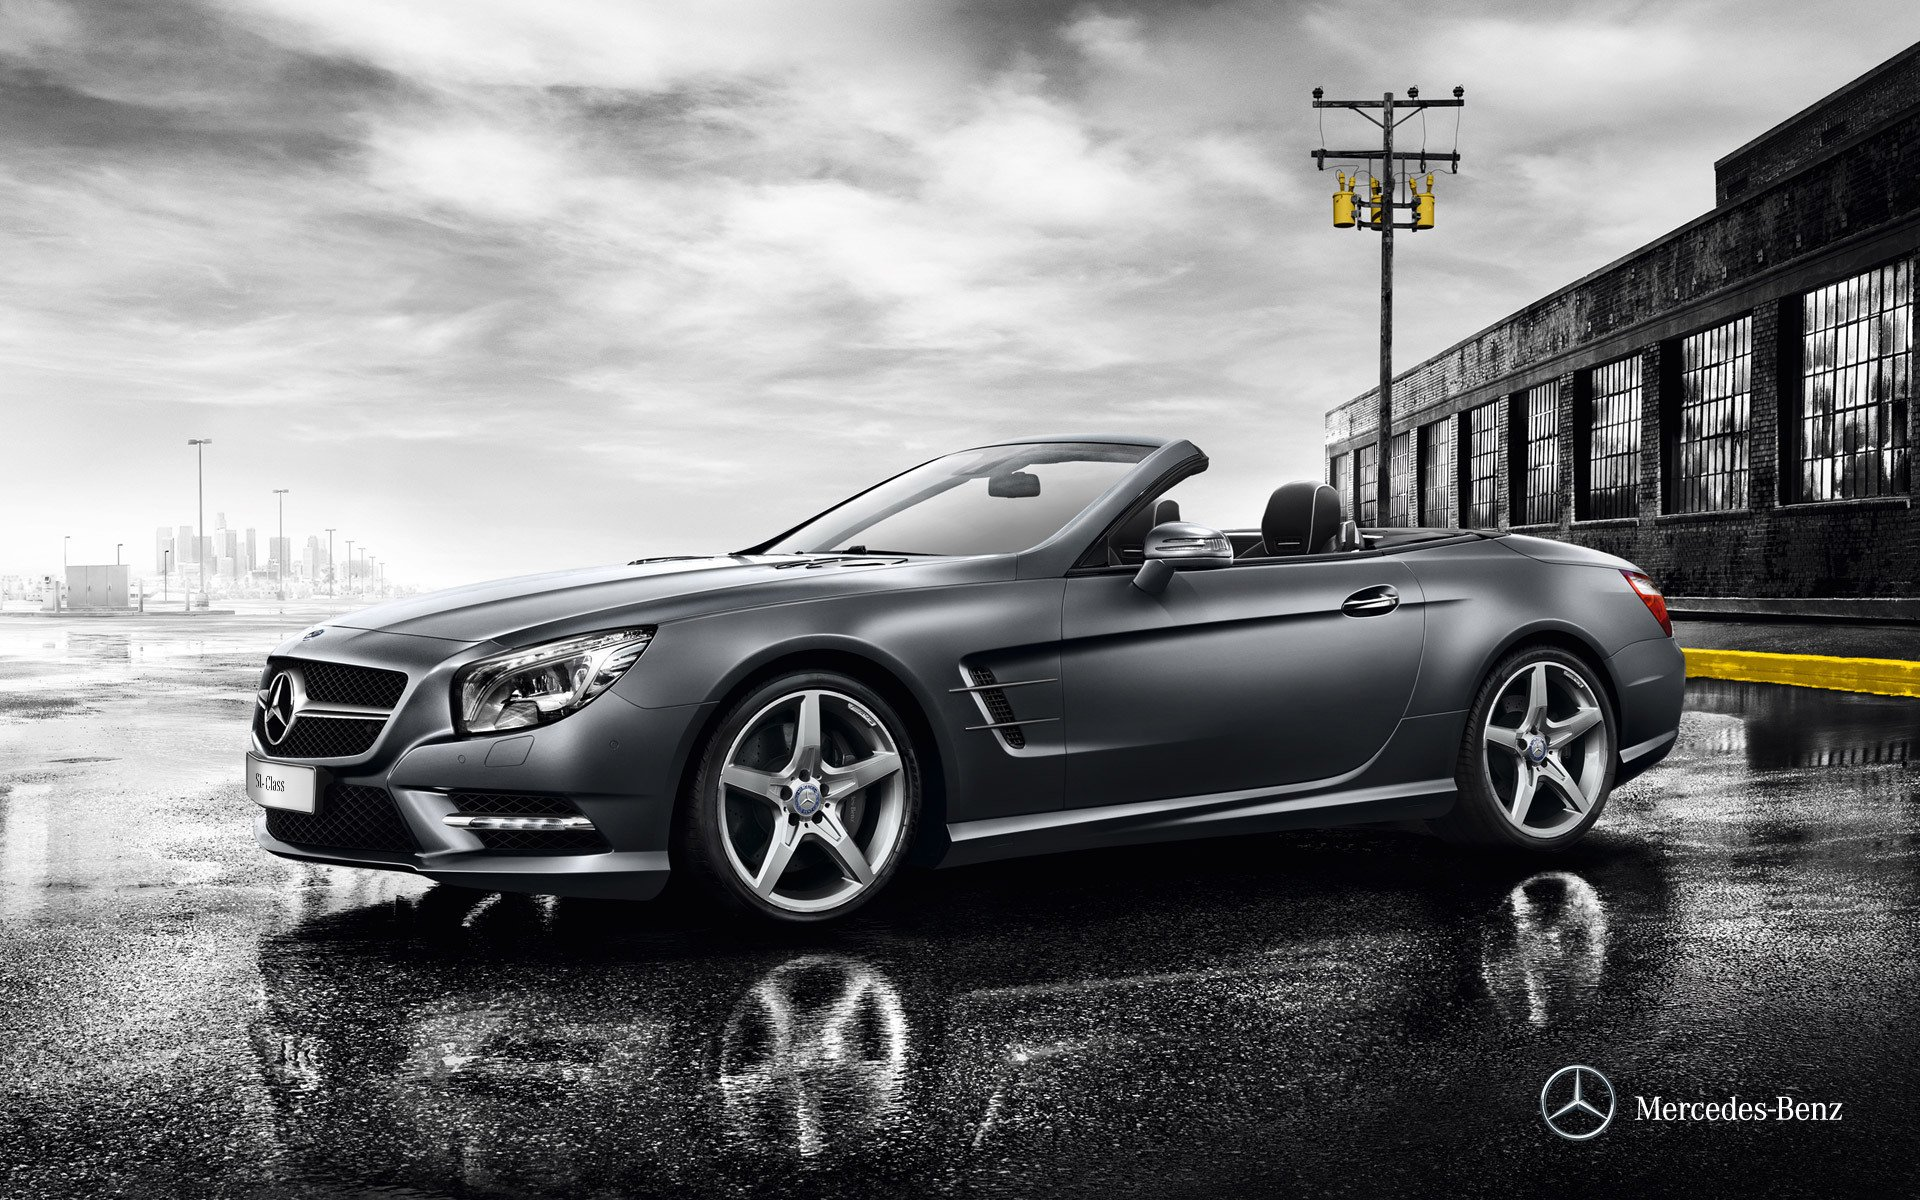 50 HD Backgrounds and Wallpapers of Mercedes Benz For Download 1920x1200